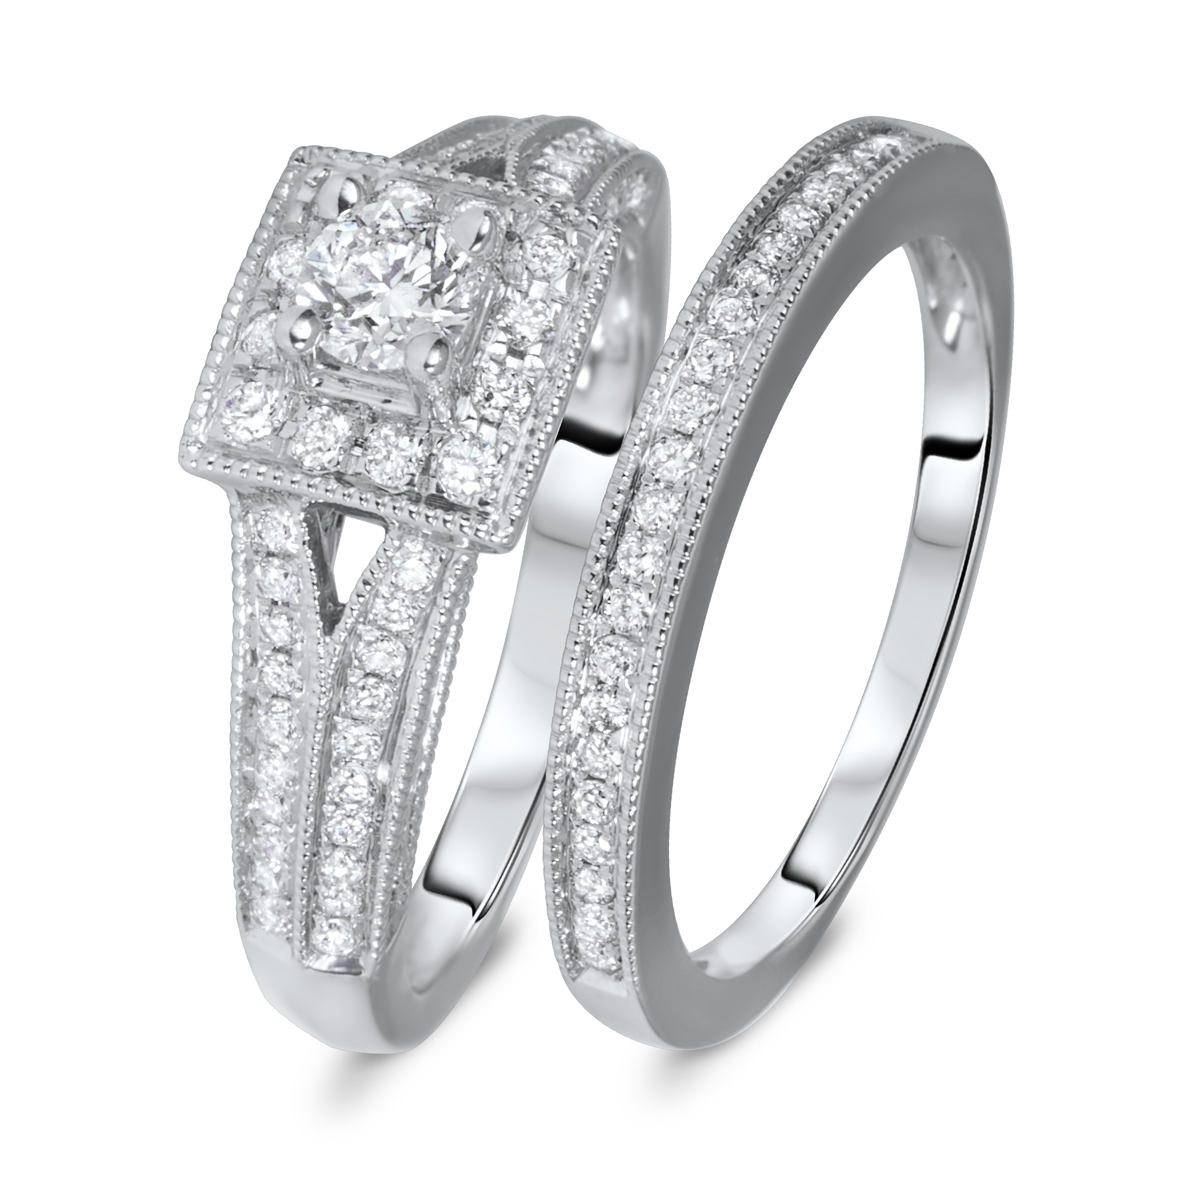 1 CT. T.W. Round Cut Diamond Ladies Bridal Wedding Ring Set 14K White Gold